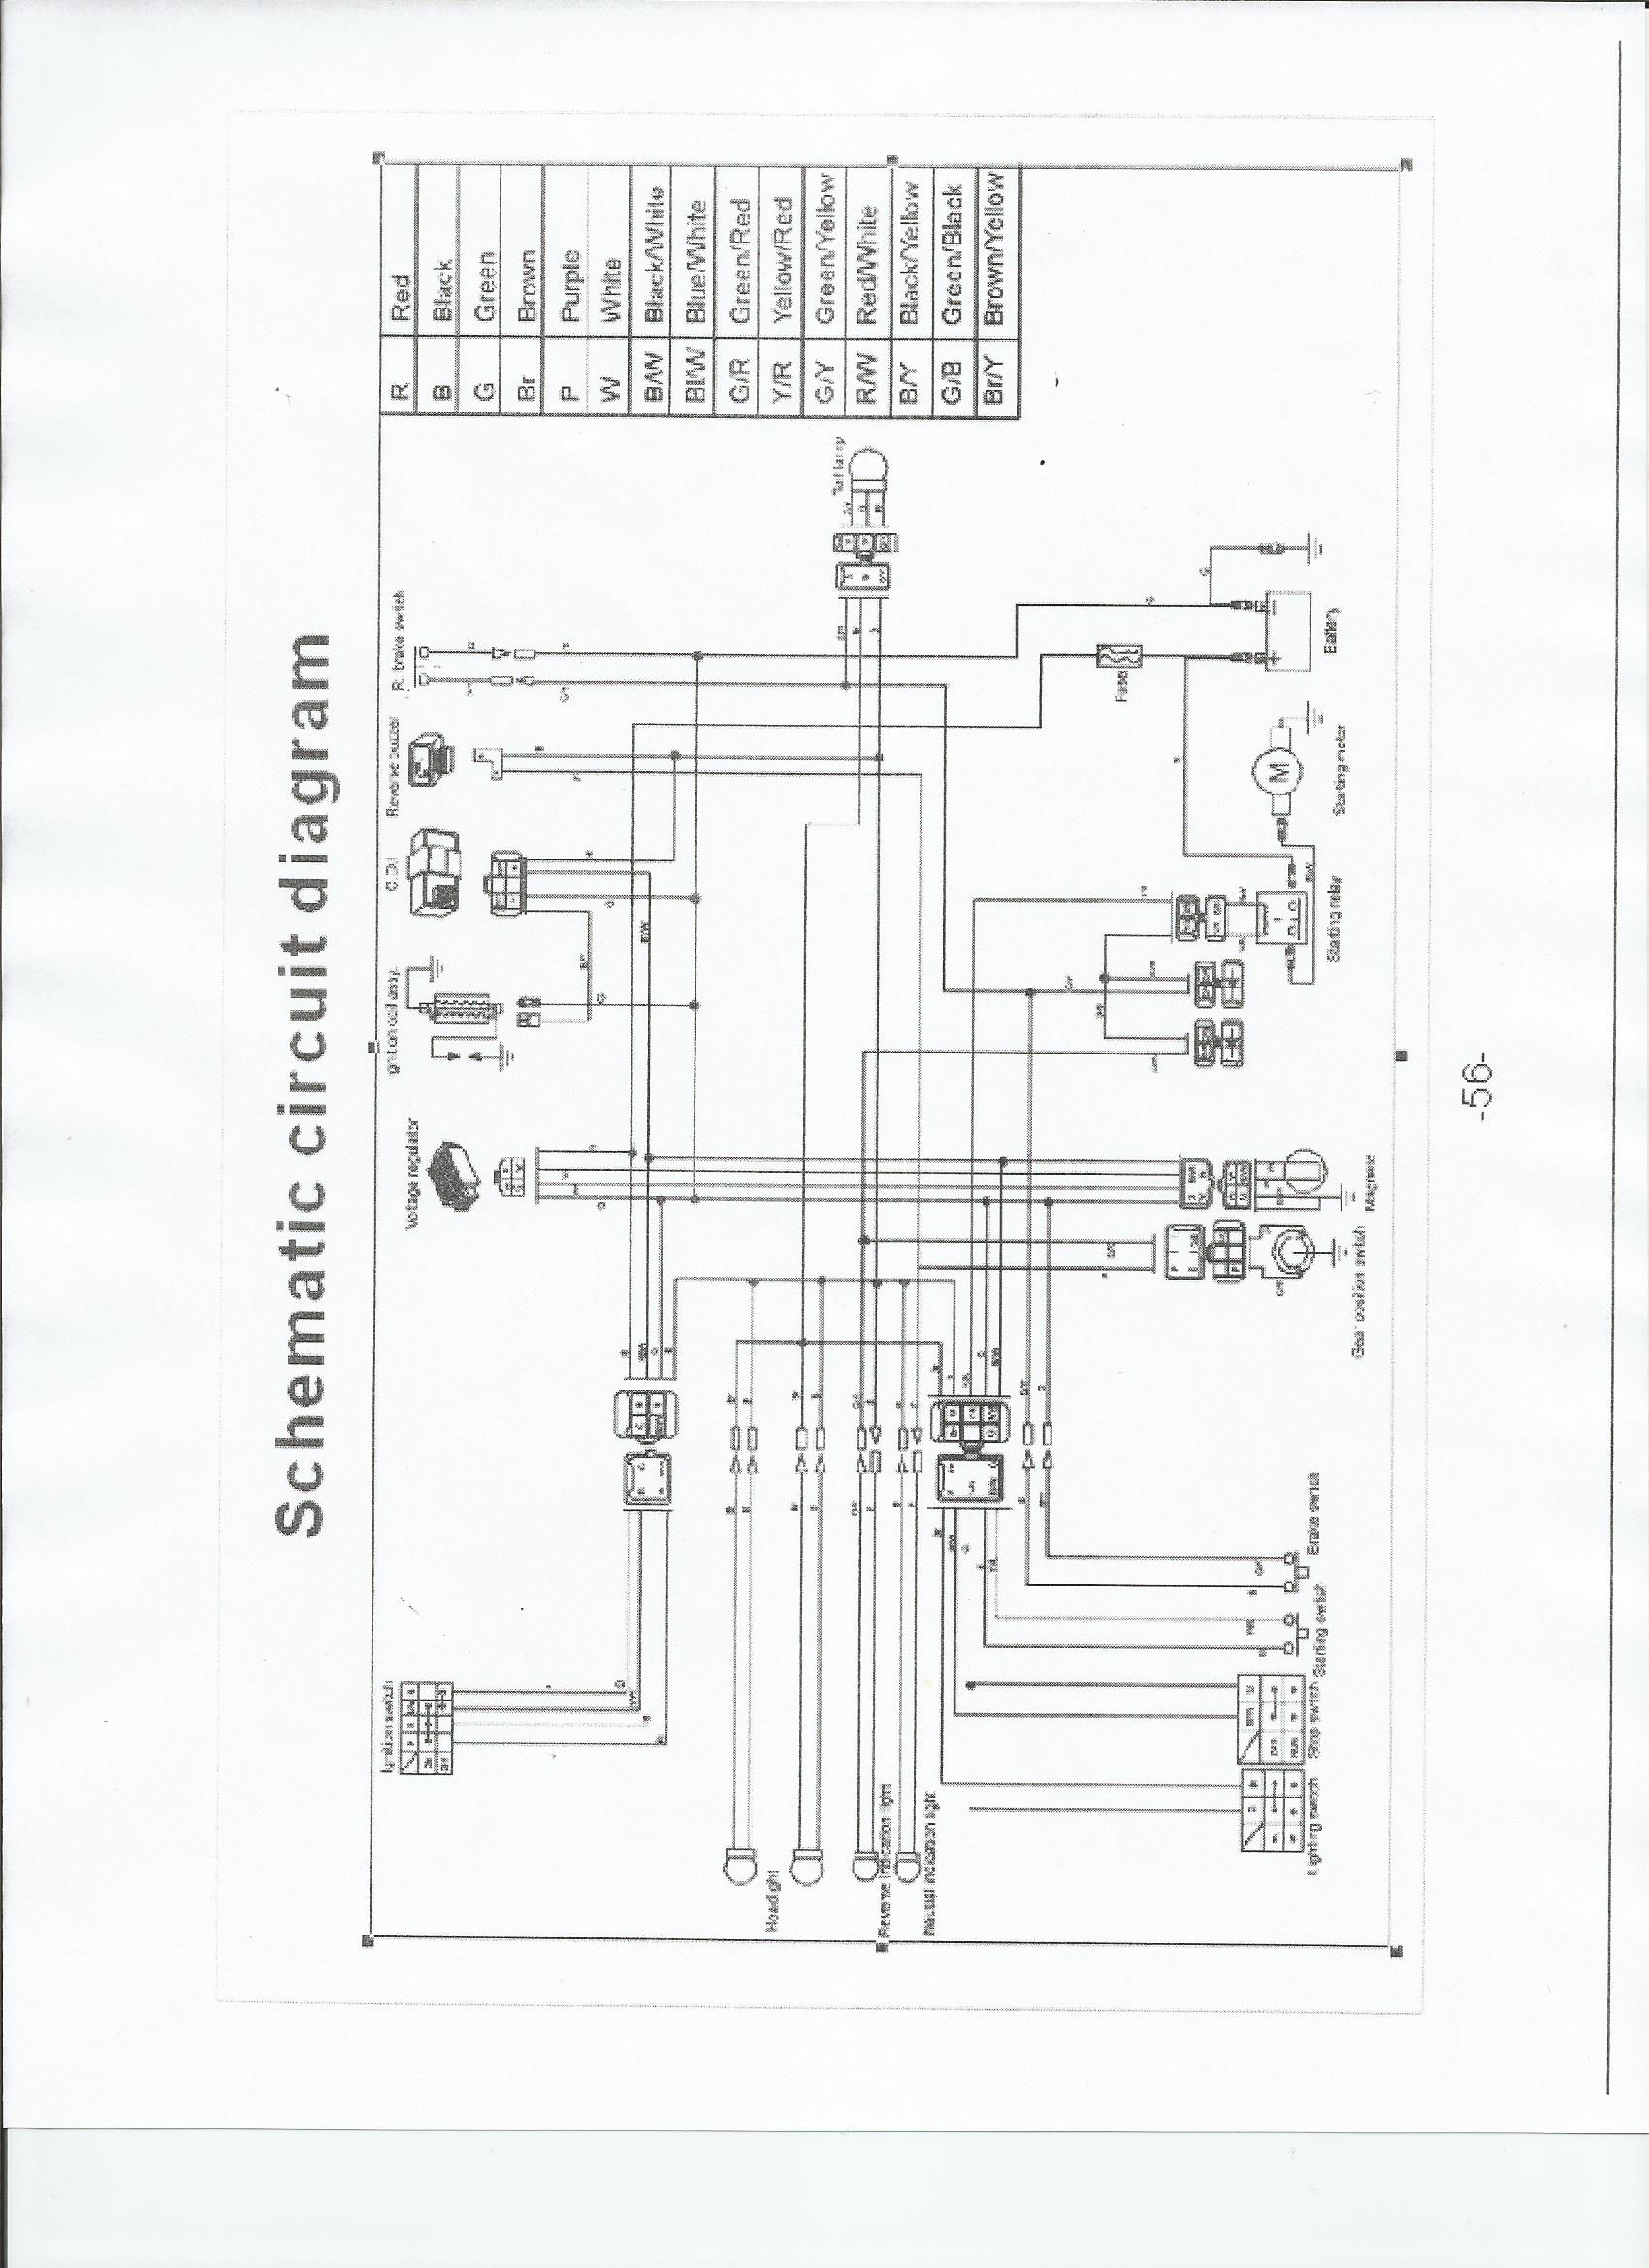 honda 400ex wiring schematic with Honda Fourtrax 300ex Wiring Diagram on Wiring Diagram For 2001 Yamaha Warrior moreover Atc 200e Wiring Diagram as well 144401 Reverse Light in addition Honda Atv Wiring Diagrams further Honda Fourtrax 300ex Wiring Diagram.